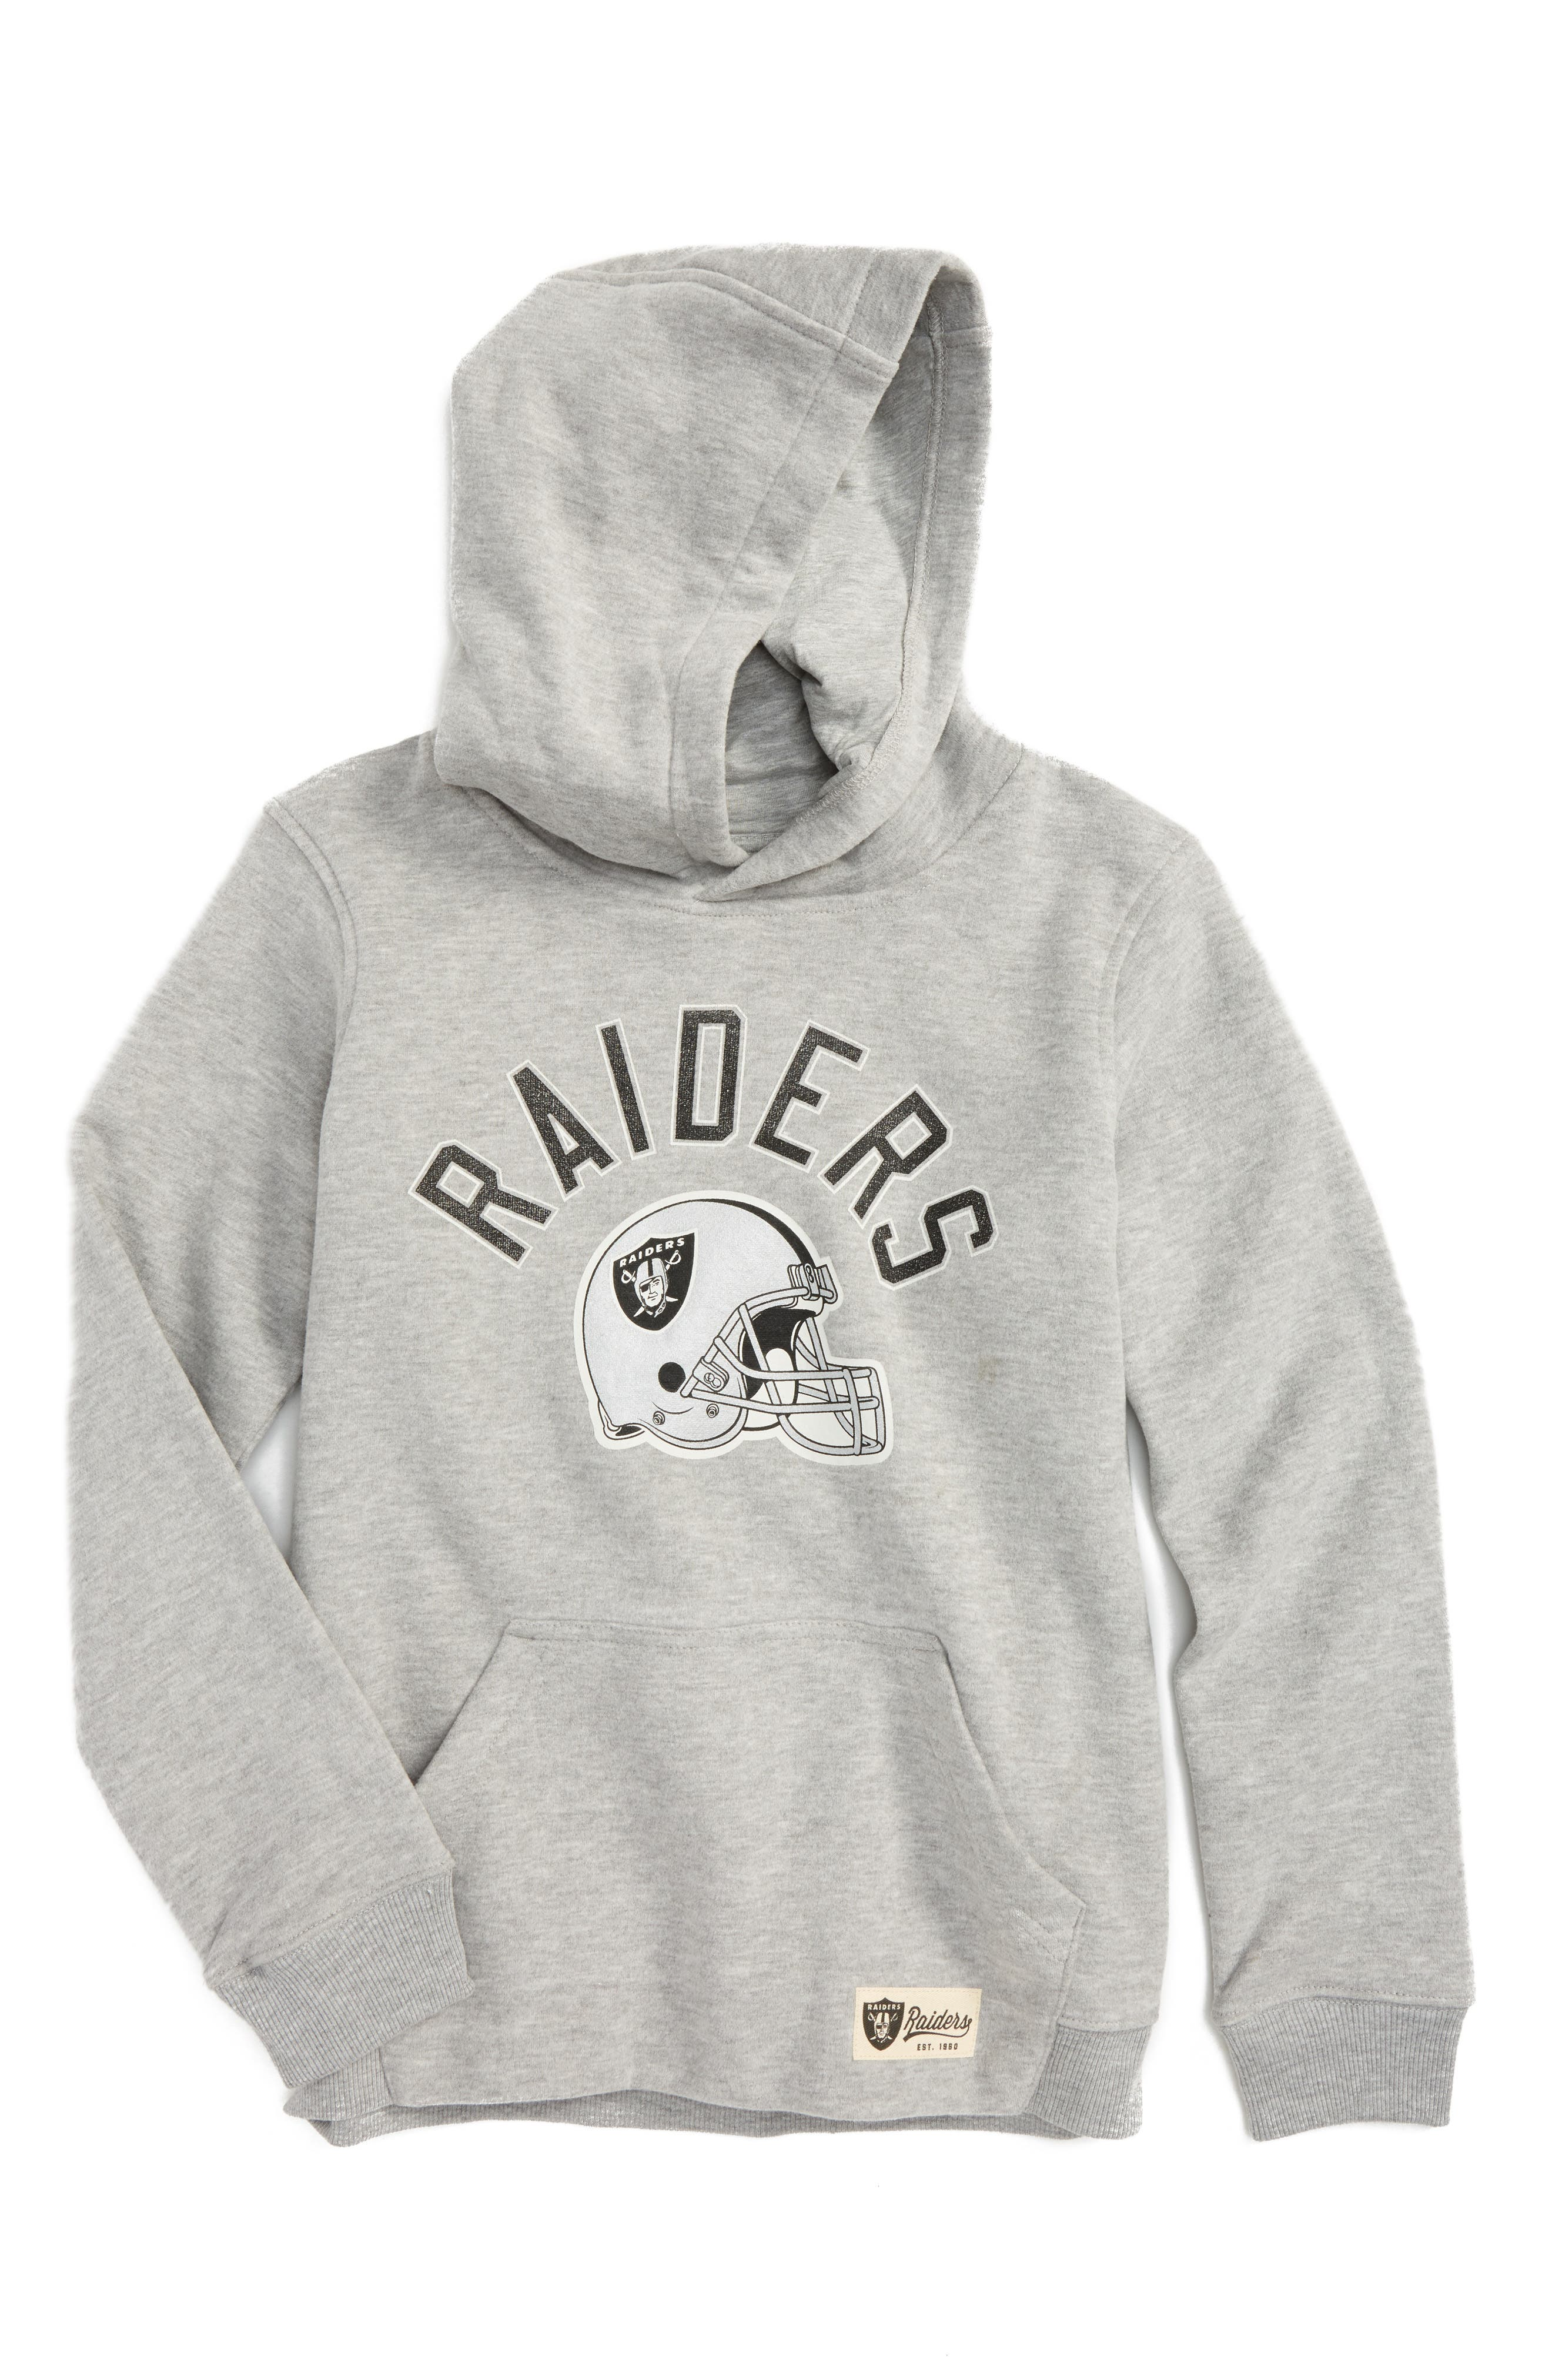 Main Image - Outerstuff NFL Oakland Raiders Pullover Hoodie (Big Boys)